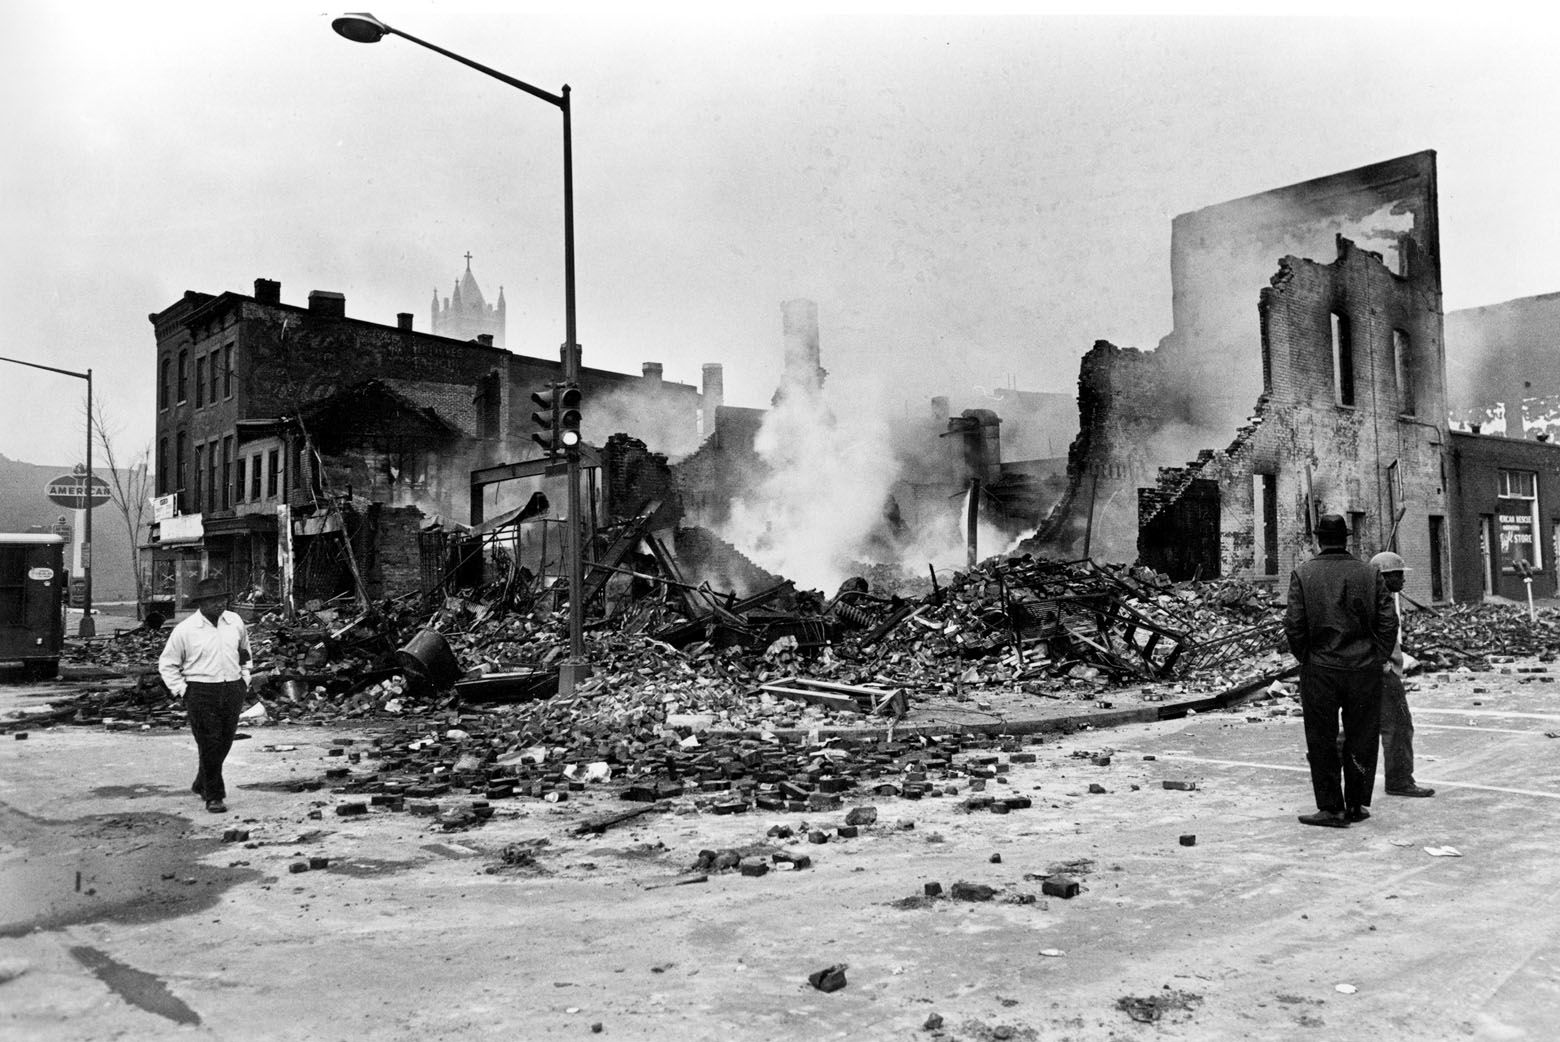 Smouldering ruins remain where a building stood on 7th Street, N.W. in Washington, D.C., April 6, 1968.  Numerous fires accompanied the second night of turmoil in the nation's capital following the assassination of Dr. Martin Luther King, Jr., in Memphis, Tenn., April 4.  (AP Photo)